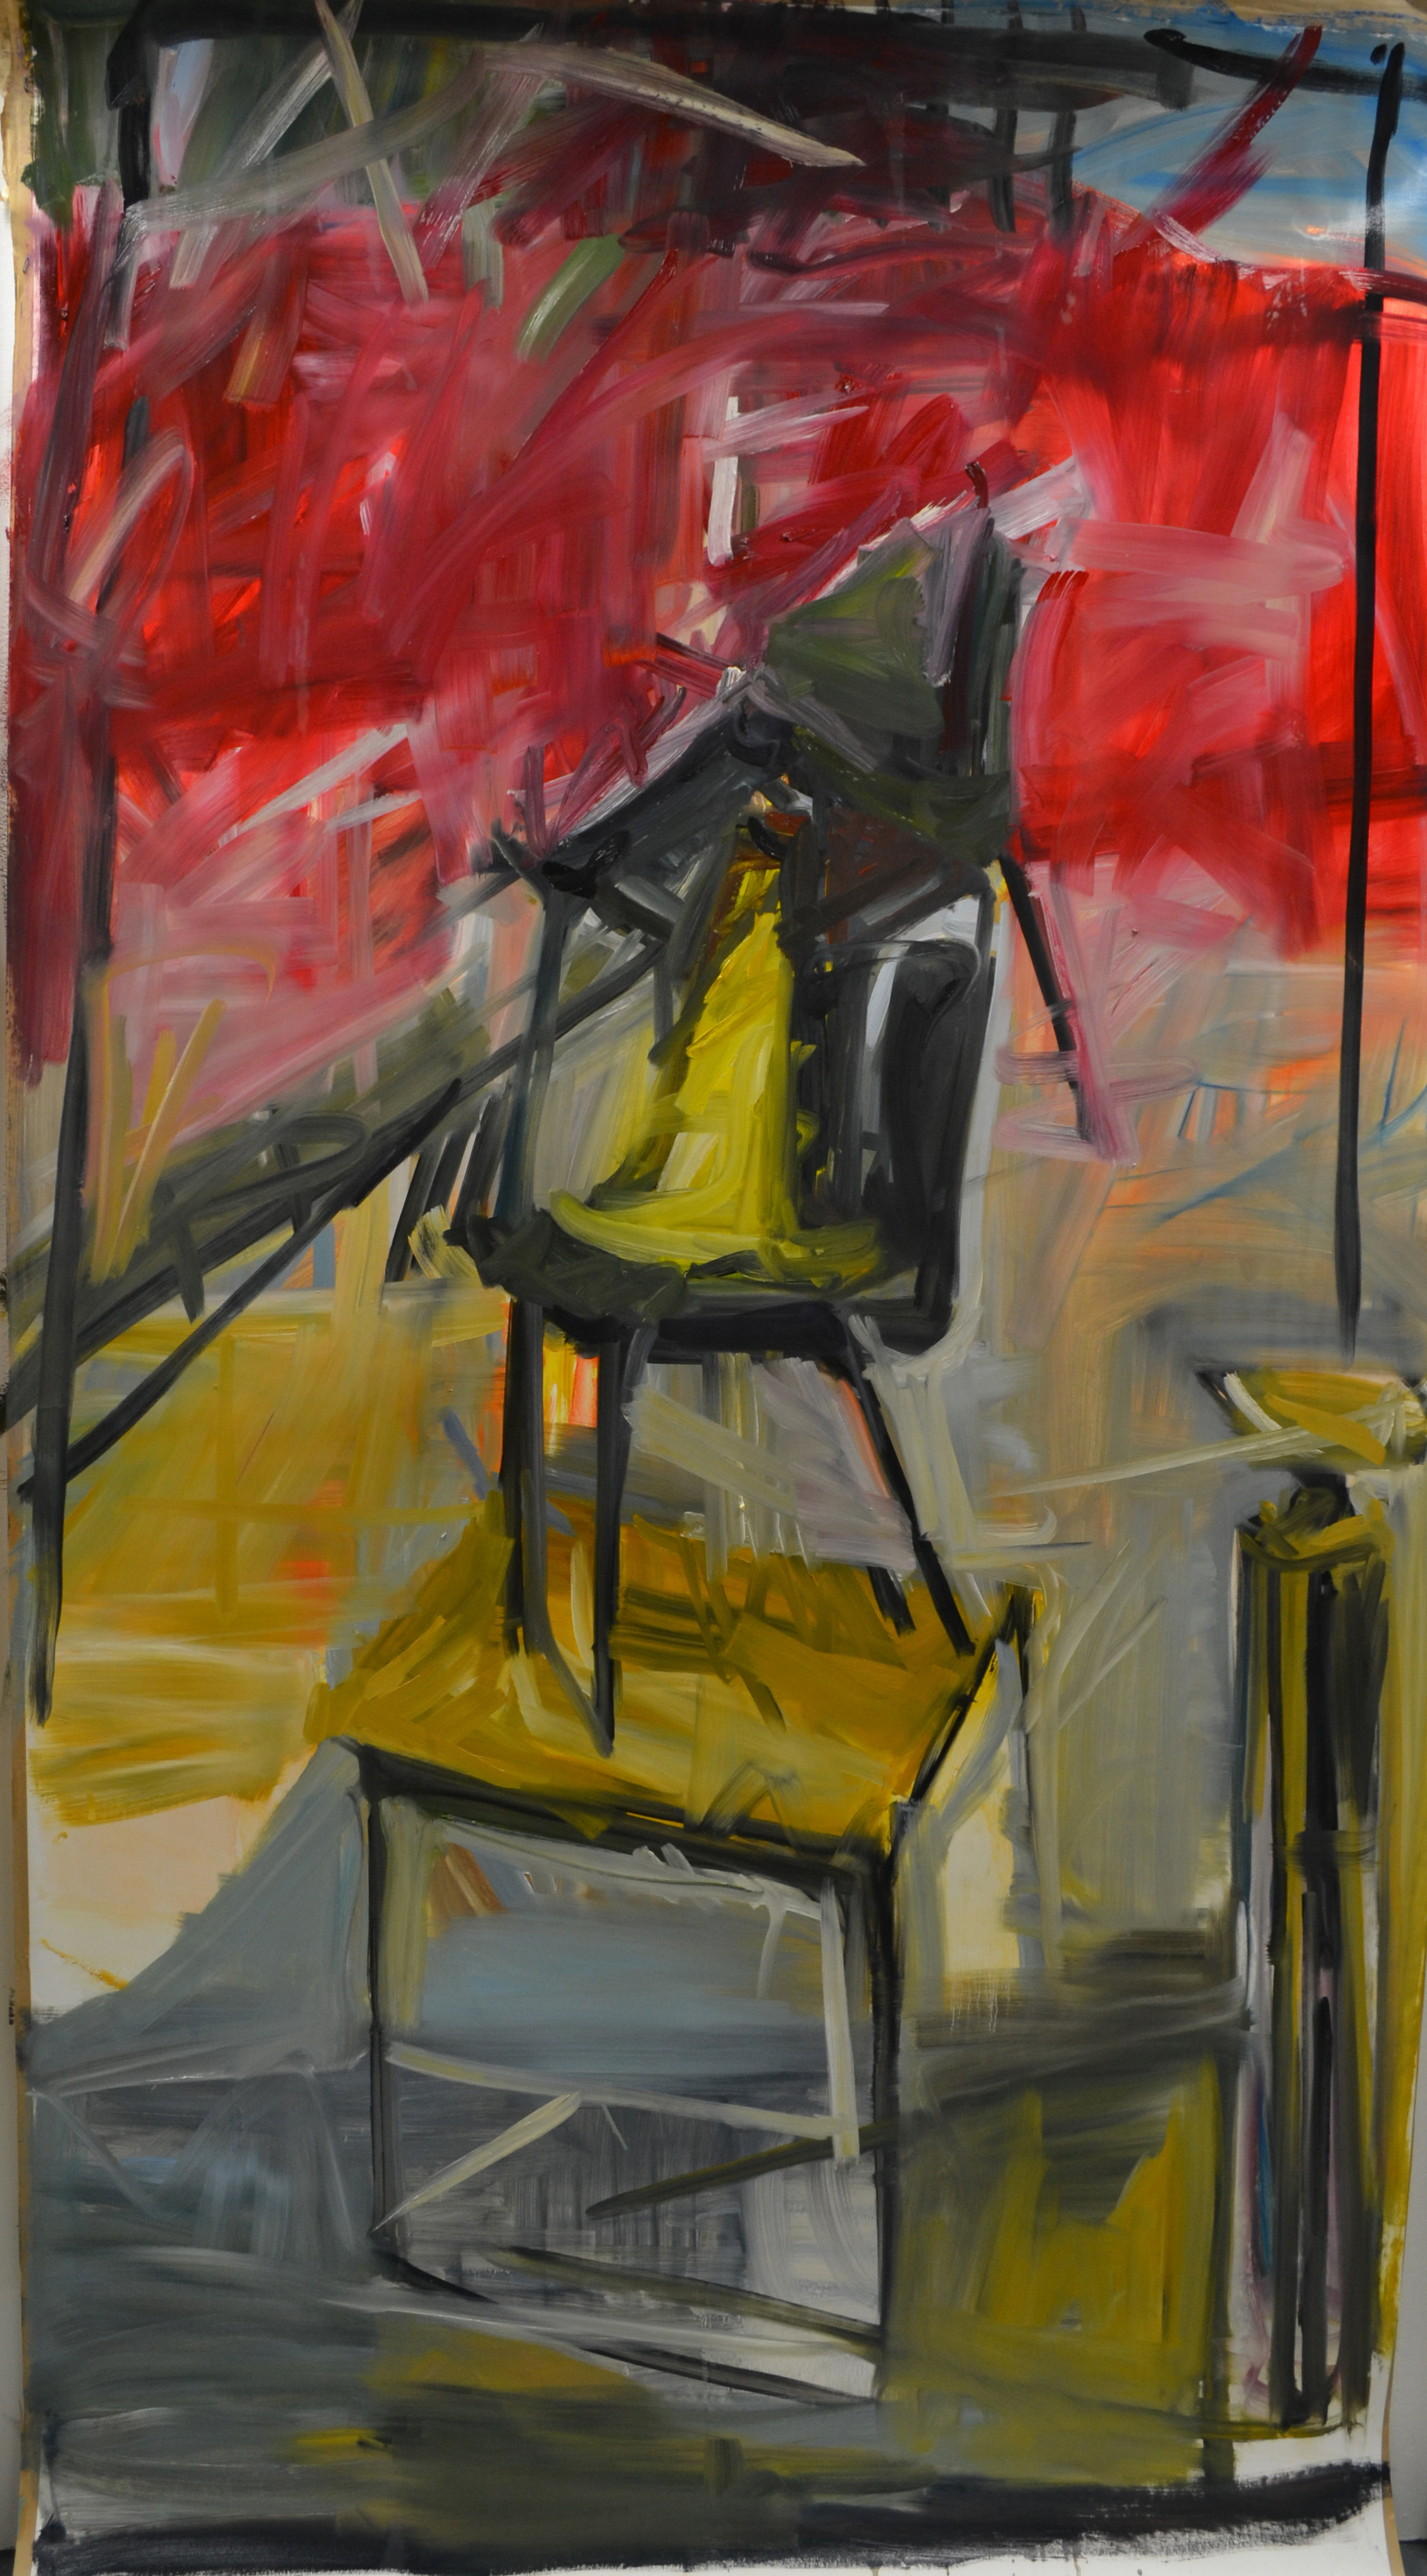 Chair 2 2015, oil on paper, 250 x 150 cm